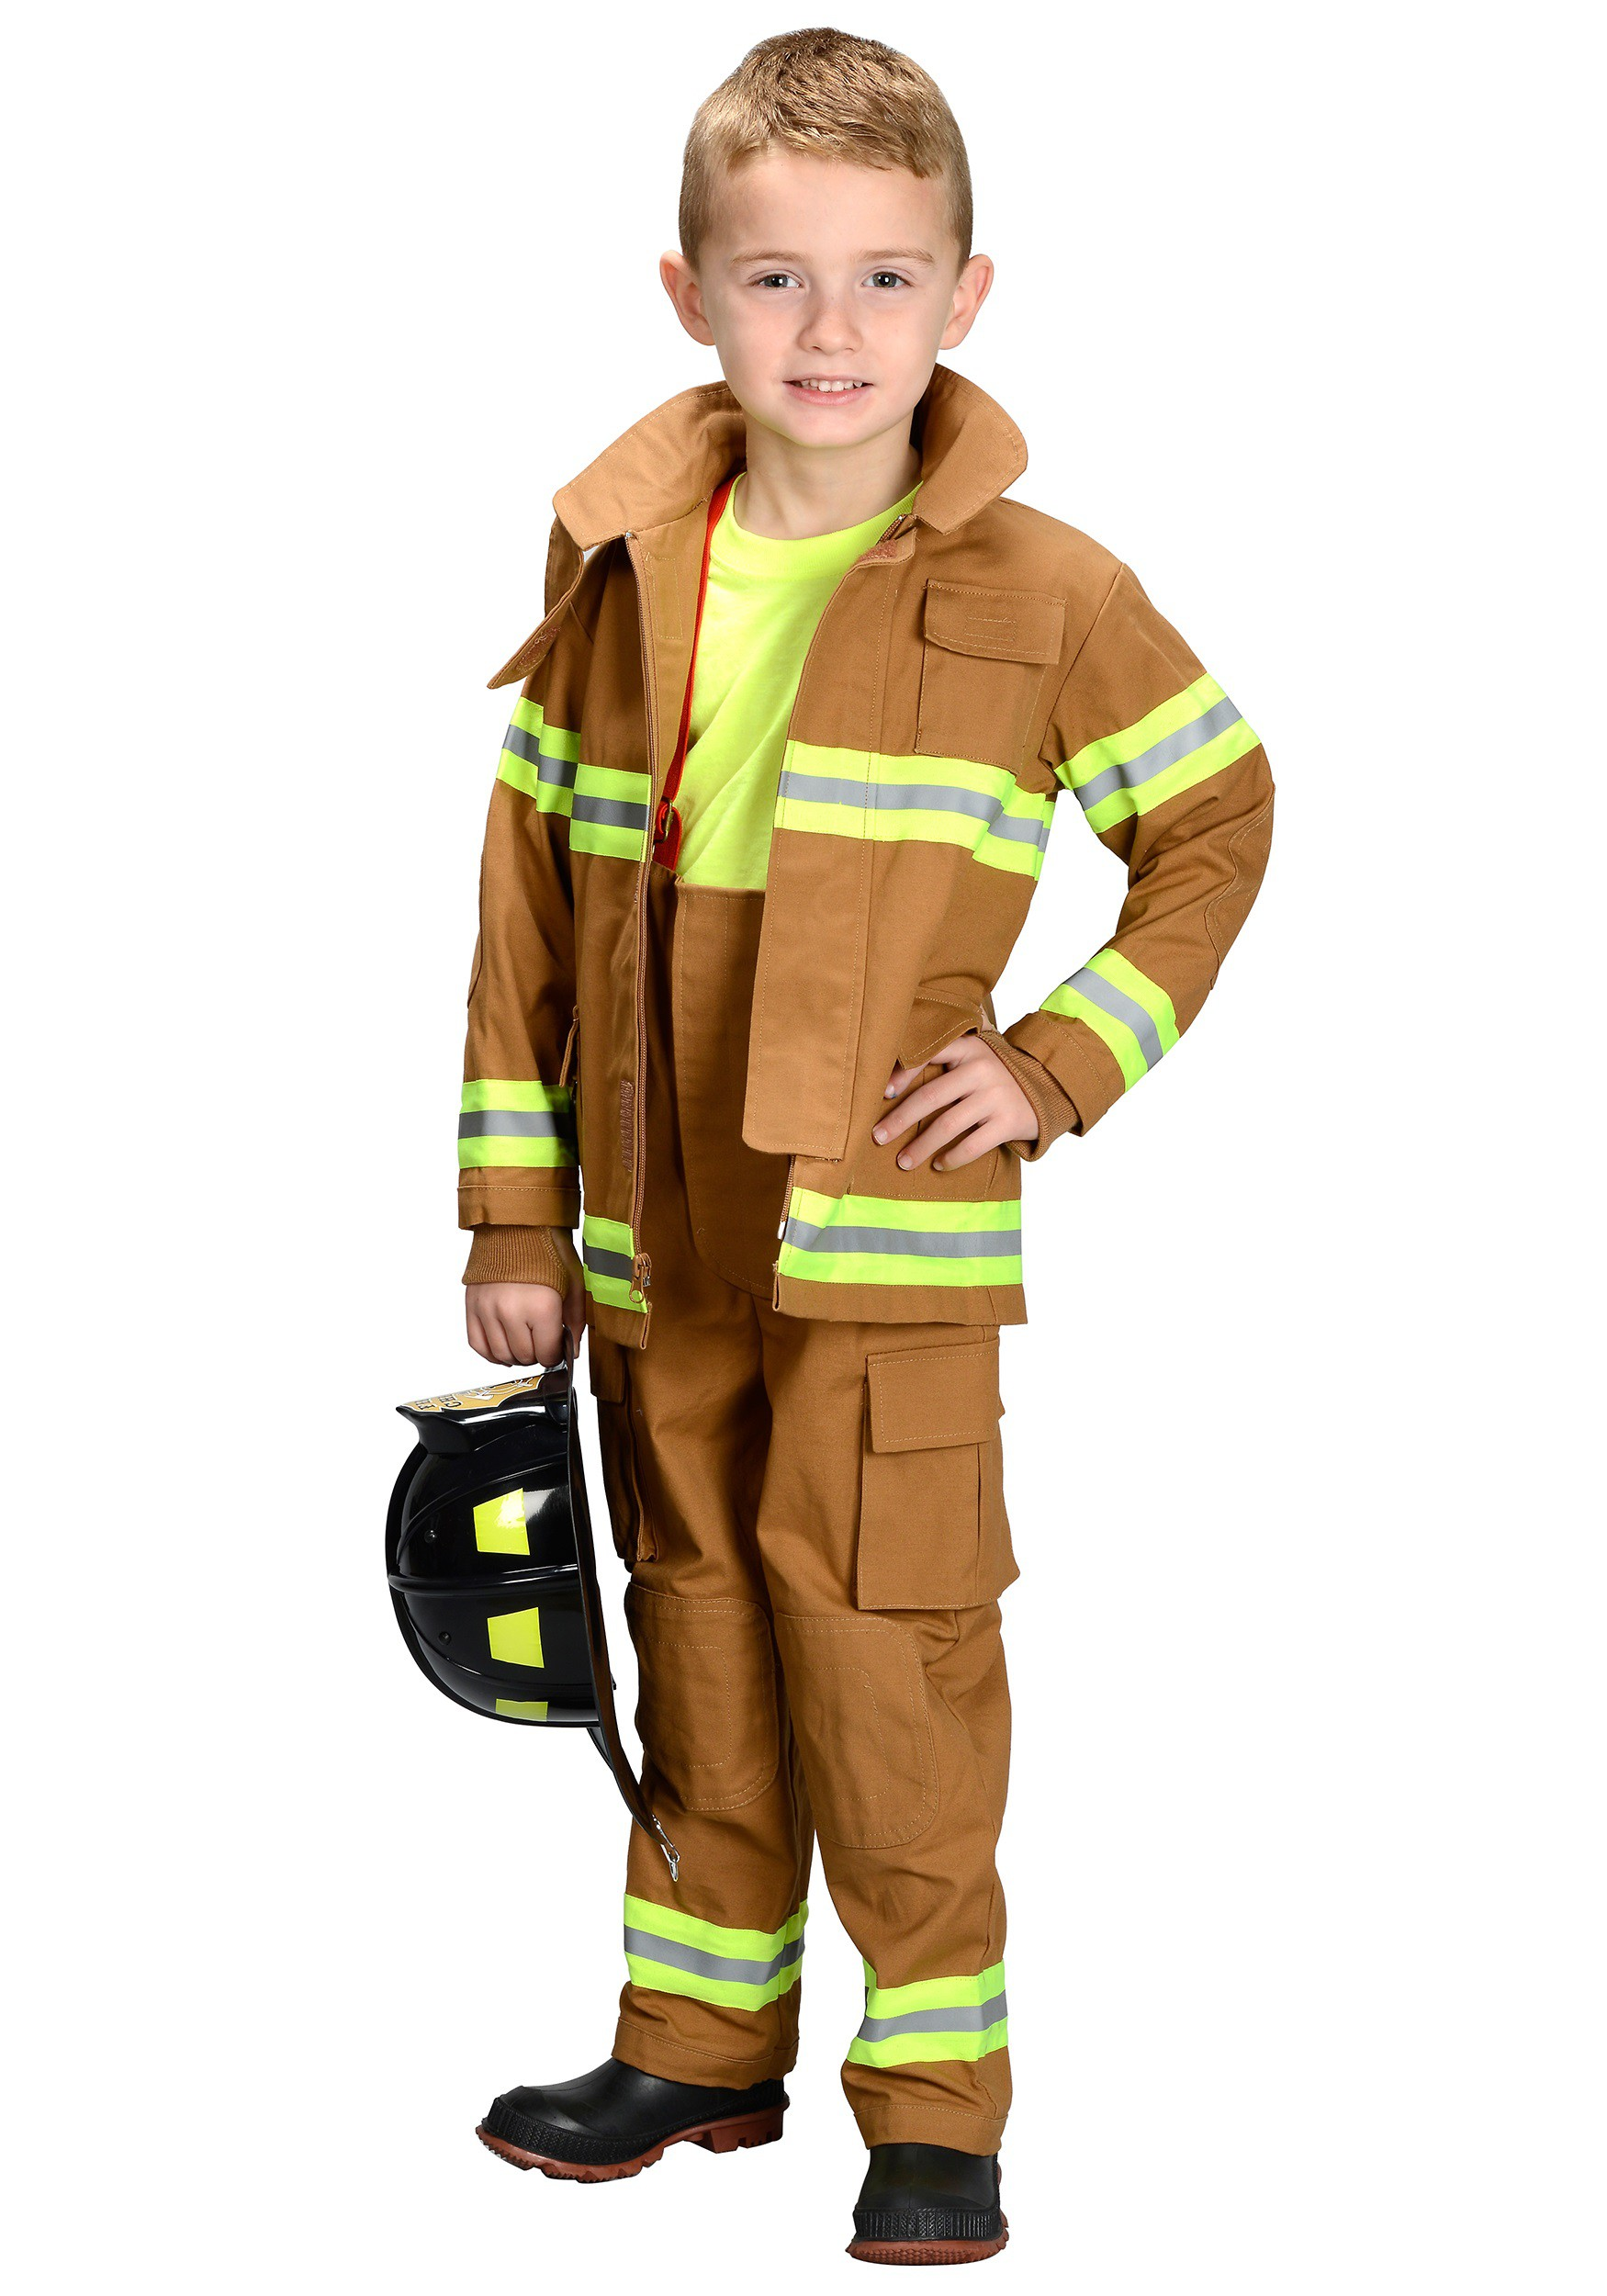 kids firefighter costume - Fireman Halloween